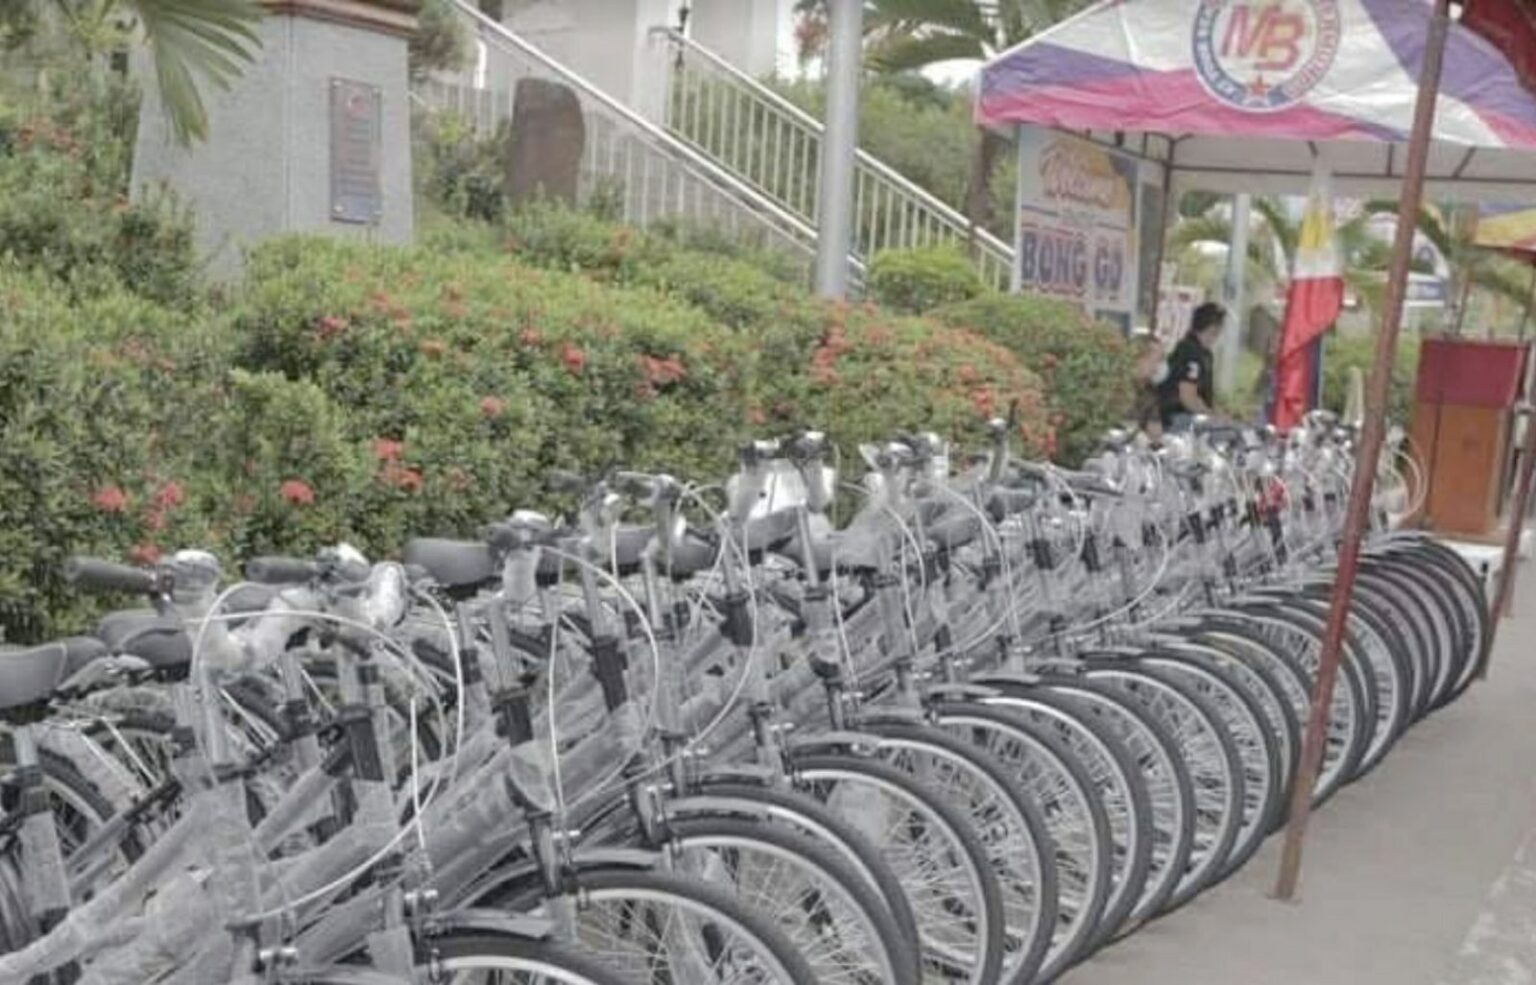 Taytay aims to be Ph's first 'Bike City'